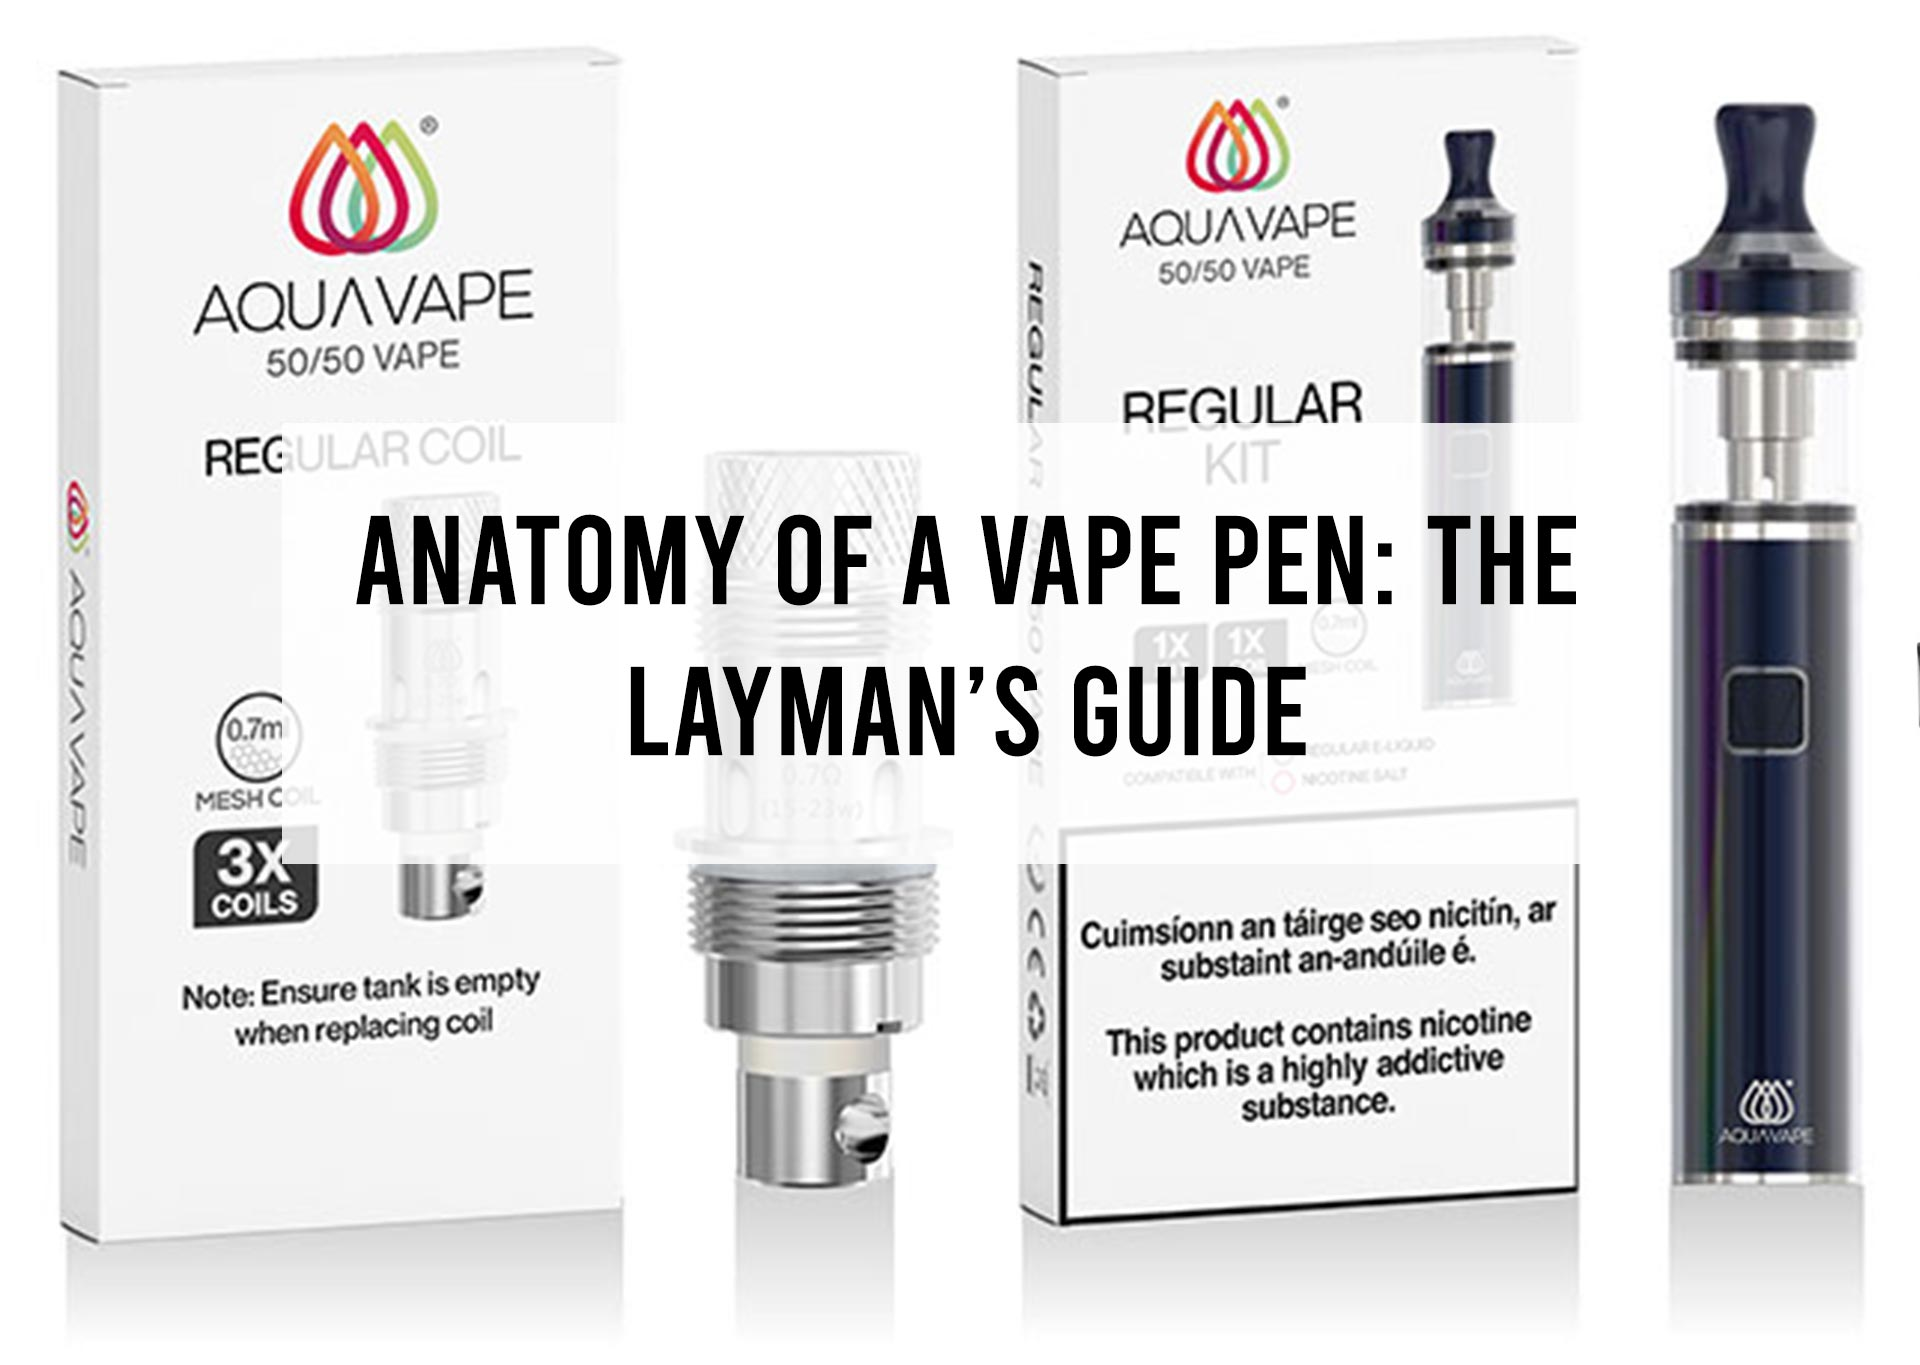 Anatomy-of-a-Vape-Pen-The-Layman's-Guide